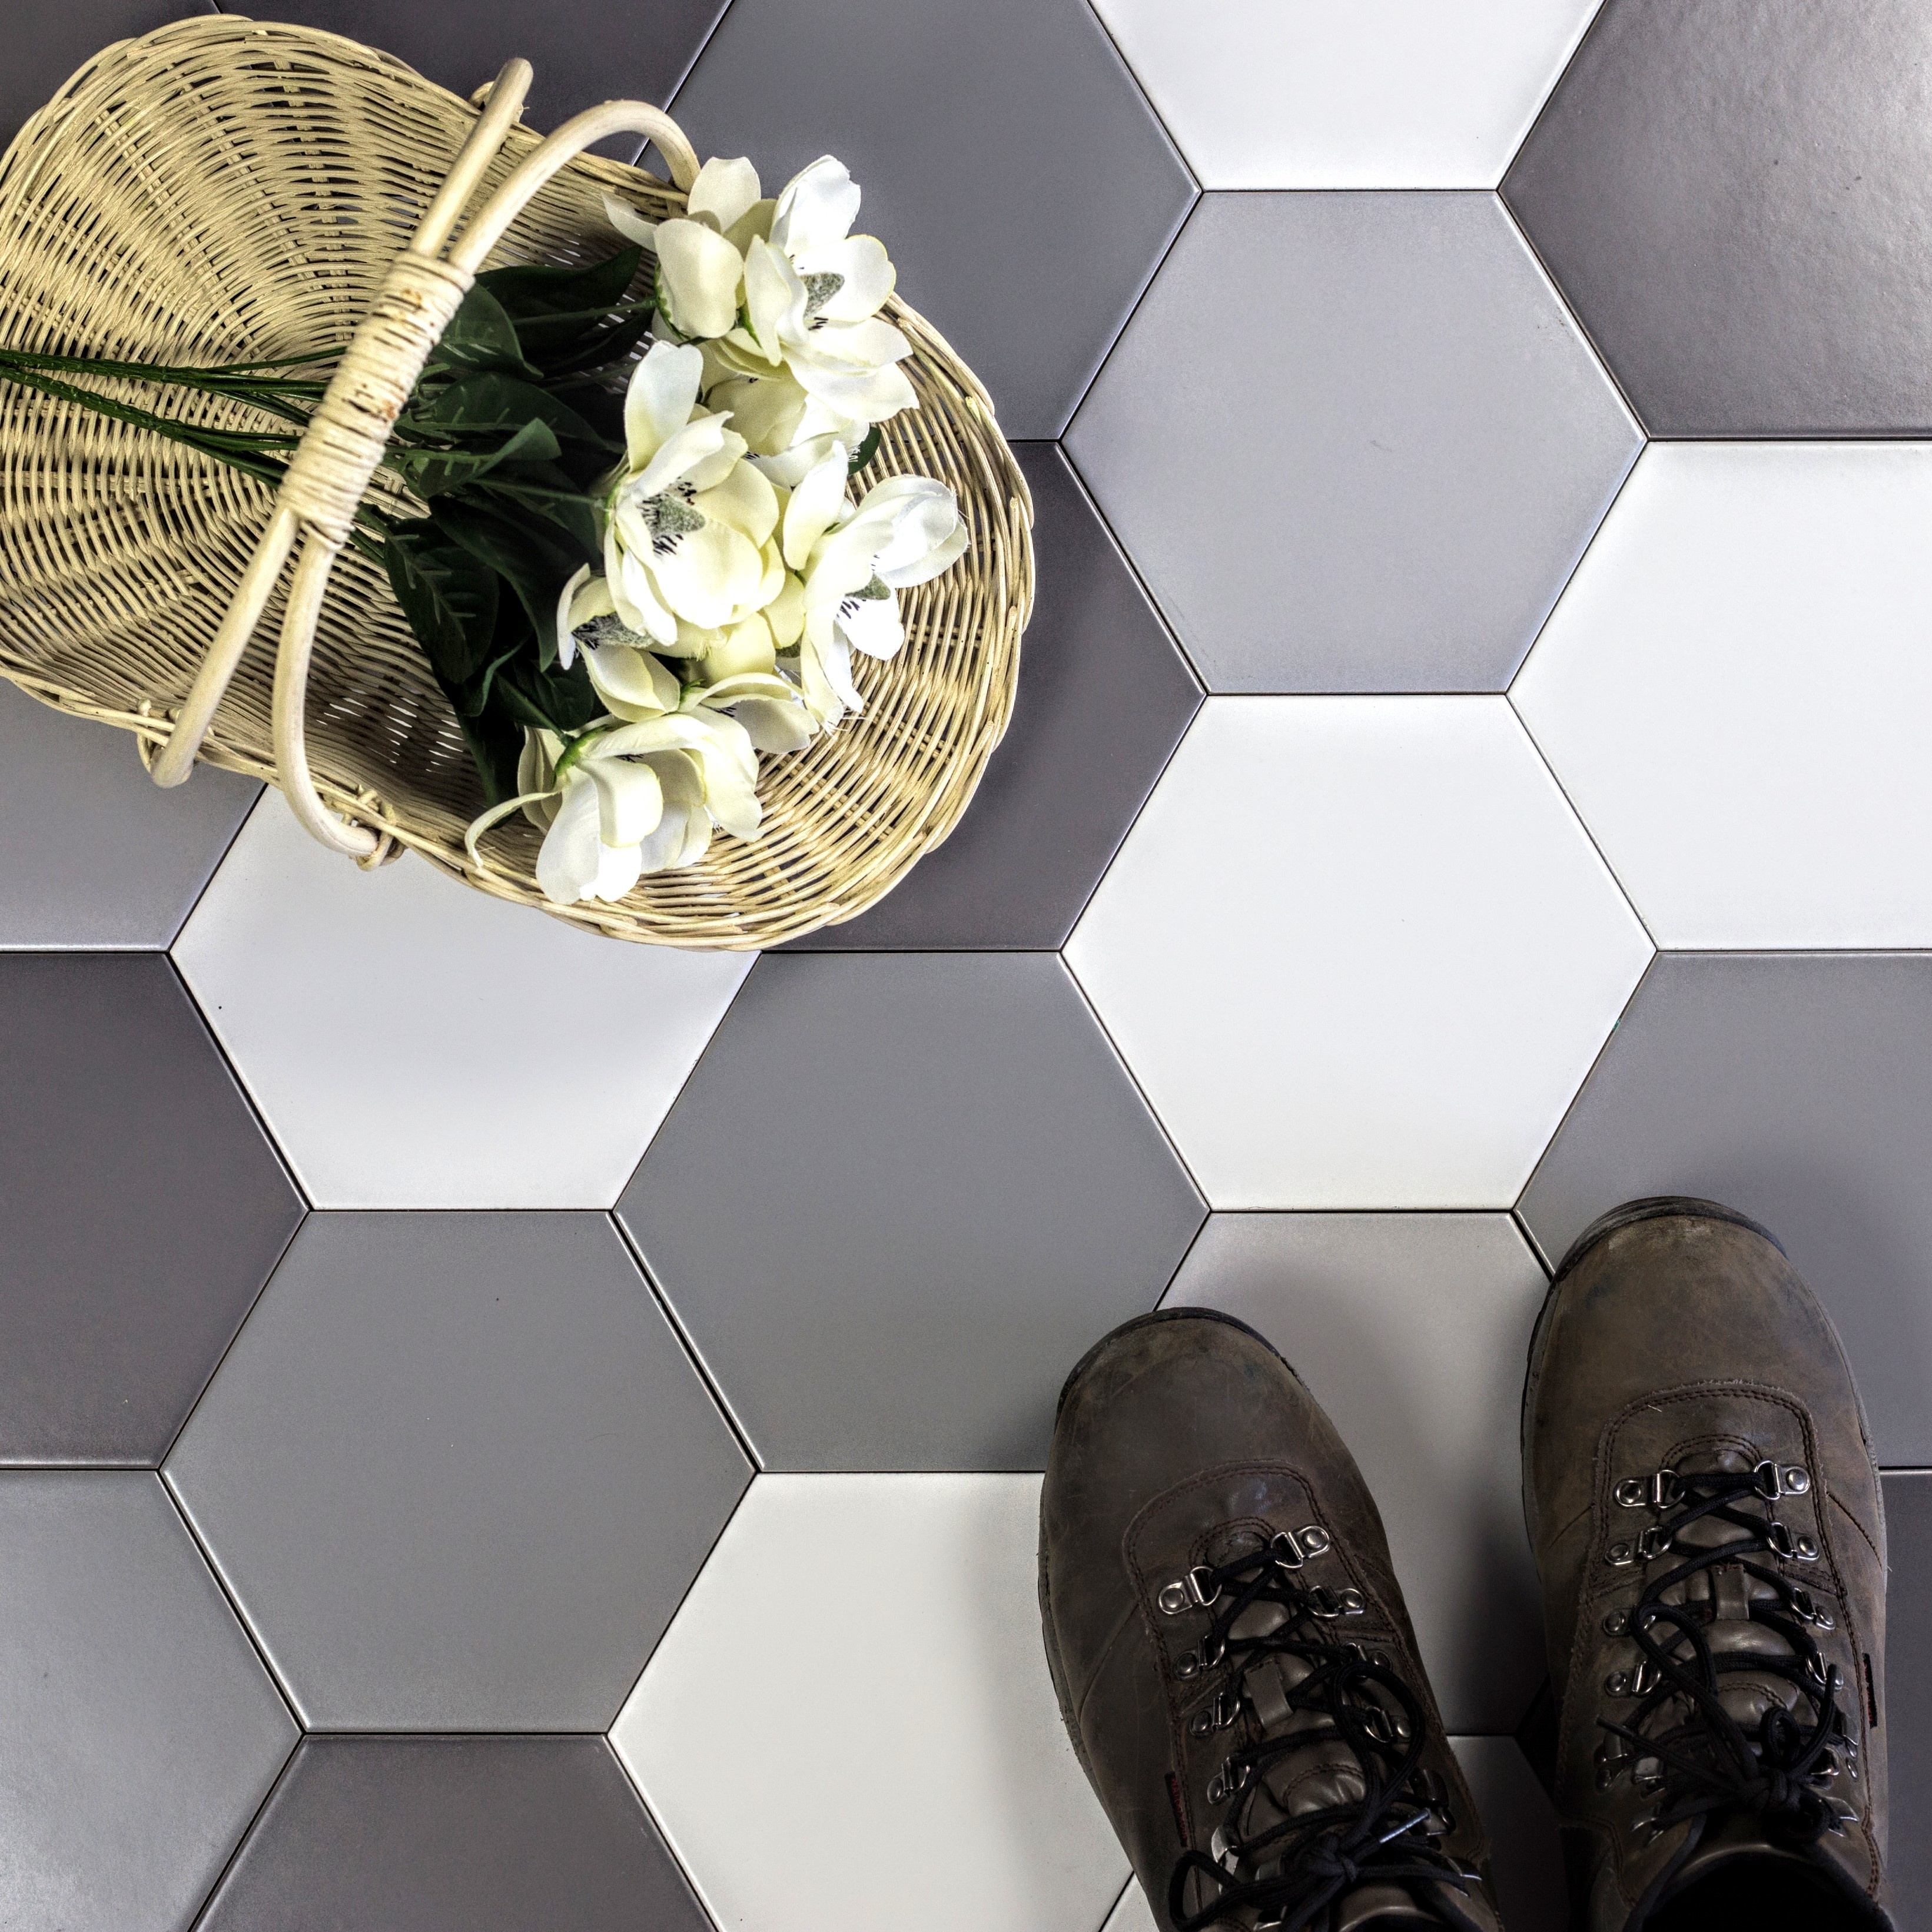 Grand Cement 7 in x 7 in Ceramic Hexagon Tile in GRAY SCALES (FROM WHITE TO DARK GRAY 4 COLORS) Matte